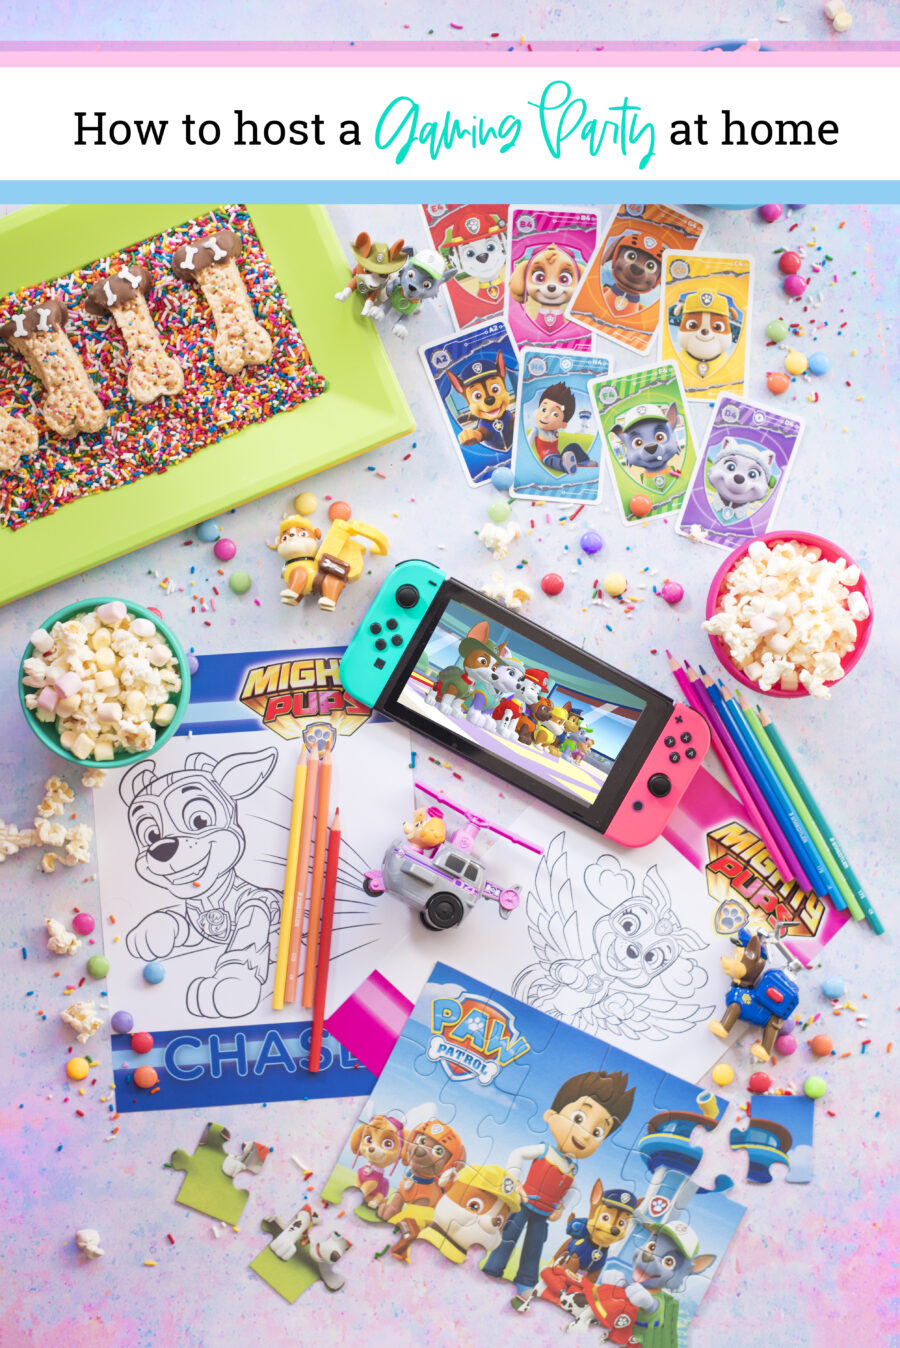 Paw Patrol Mighty Pups Save Adventure Bay: How to Host a Gaming Party